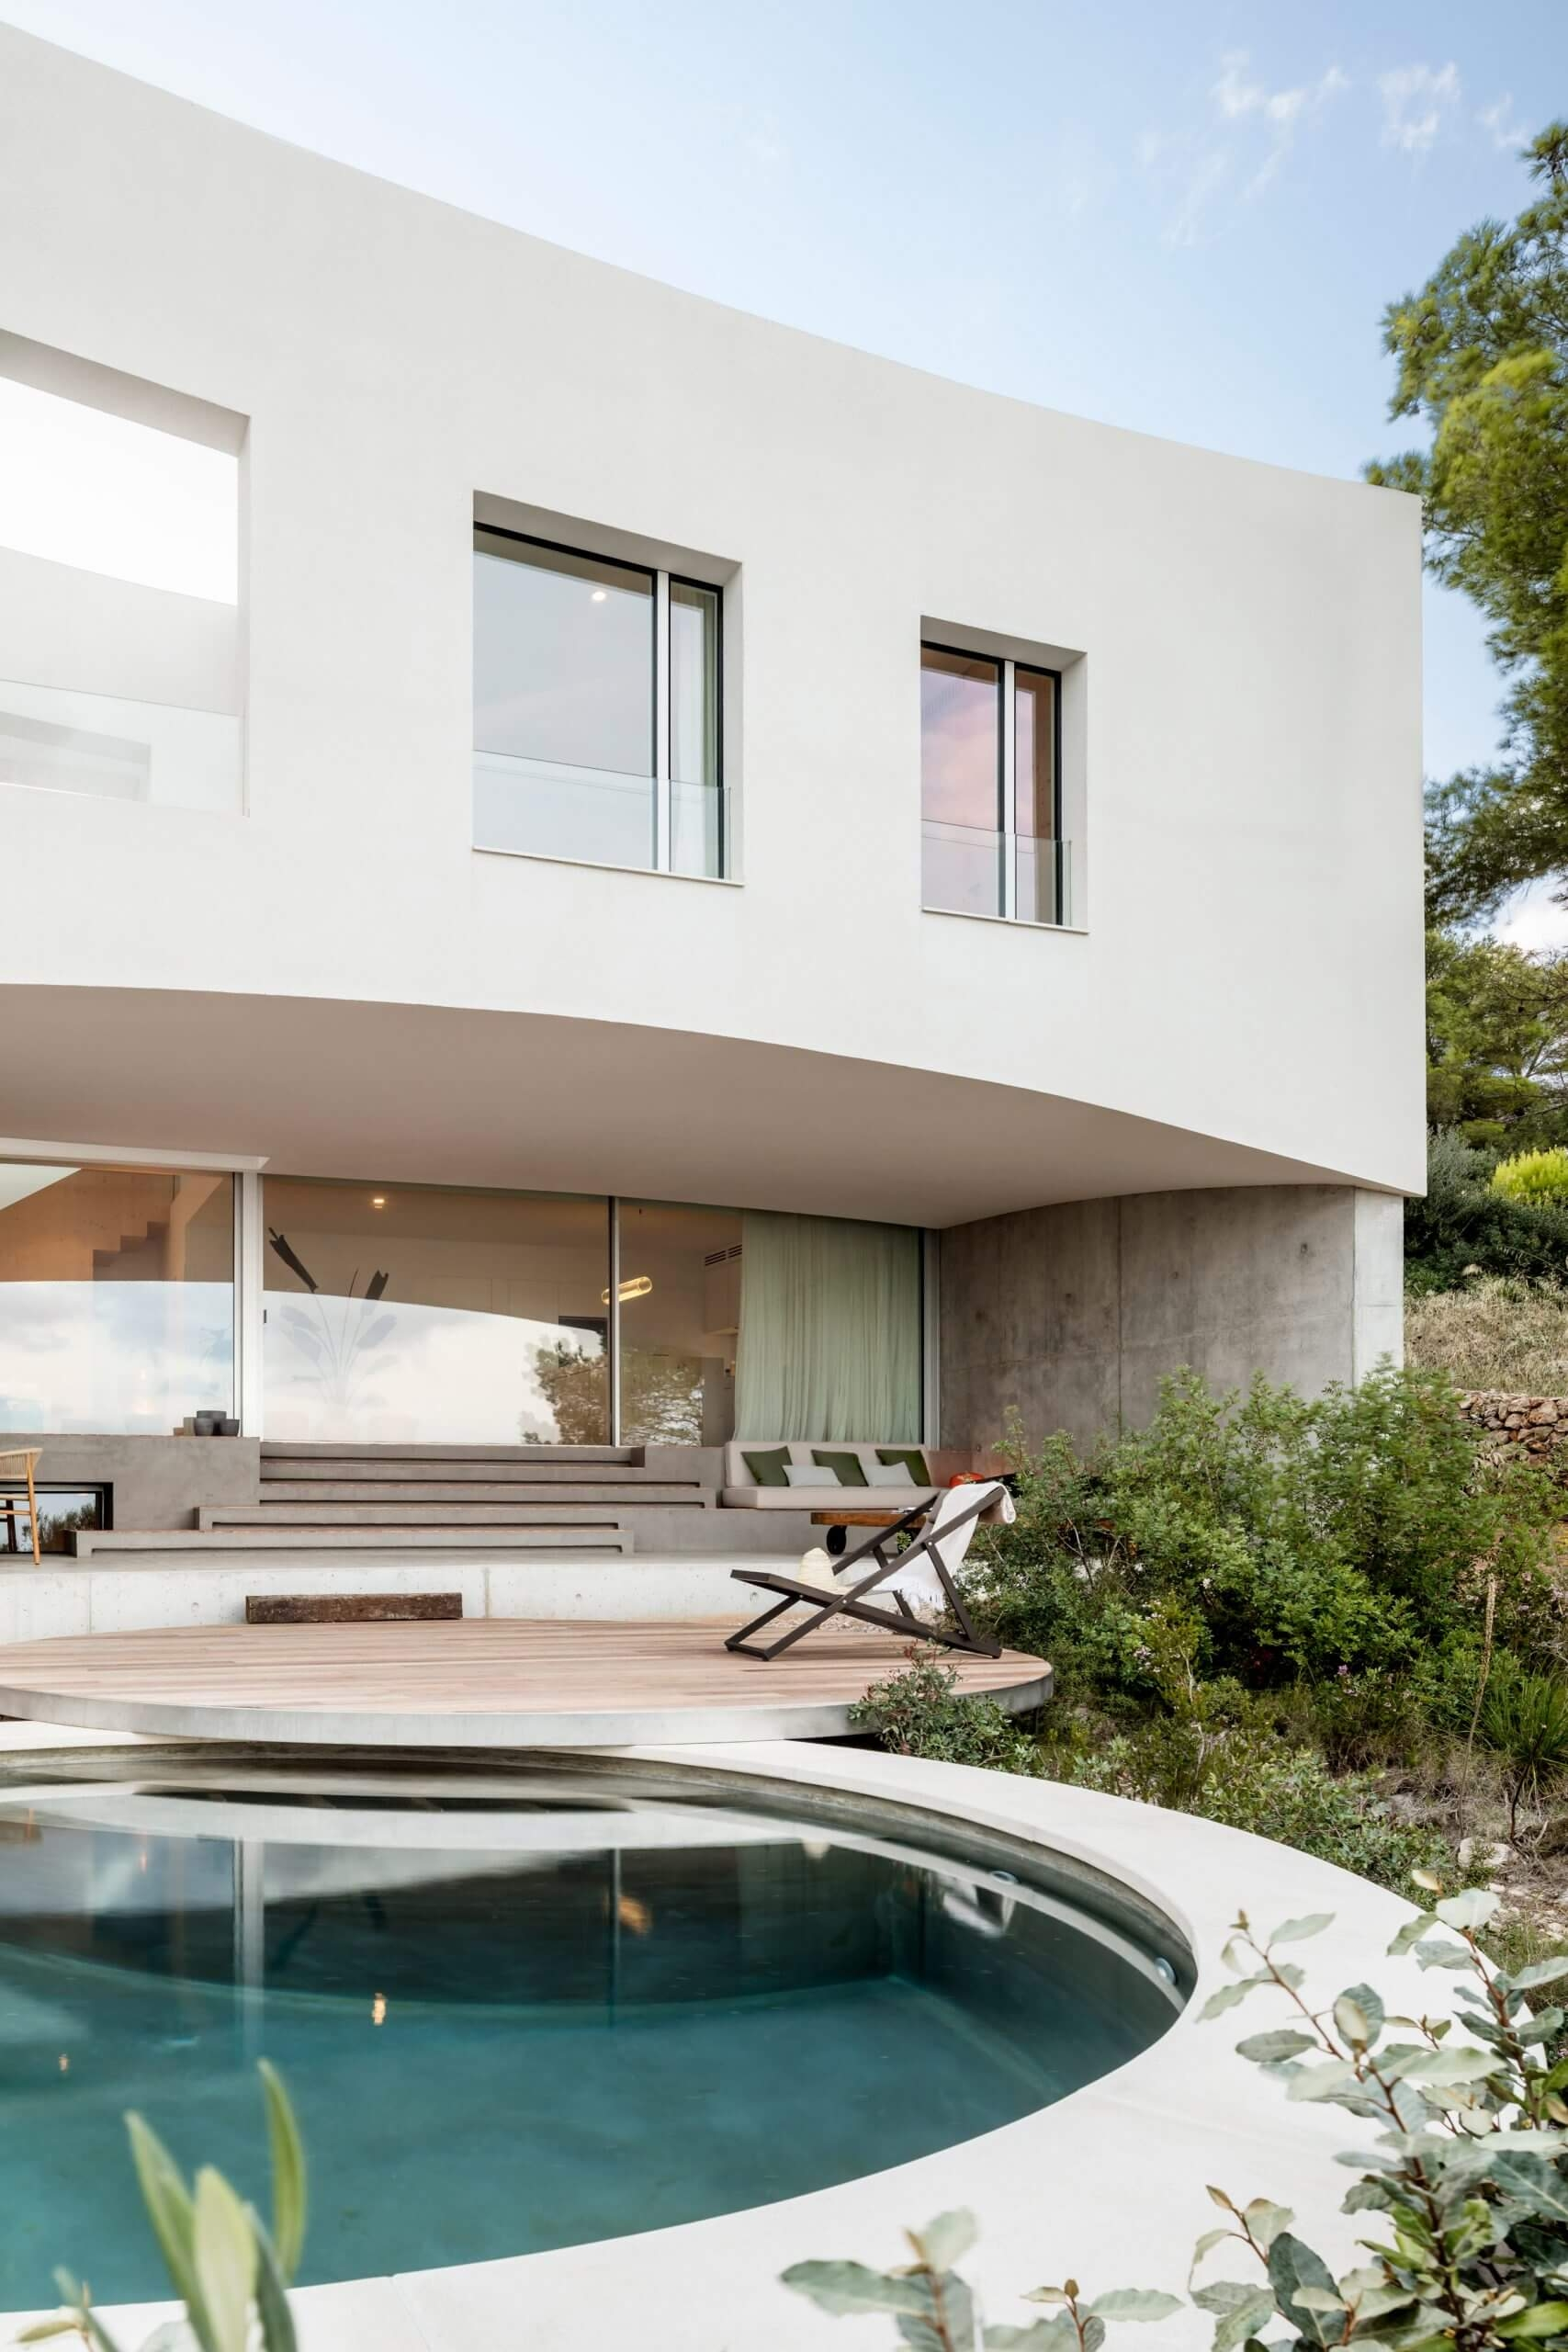 nomo studio curved house menorca spain architecture residential dezeen 2364 col 21 scaled 1